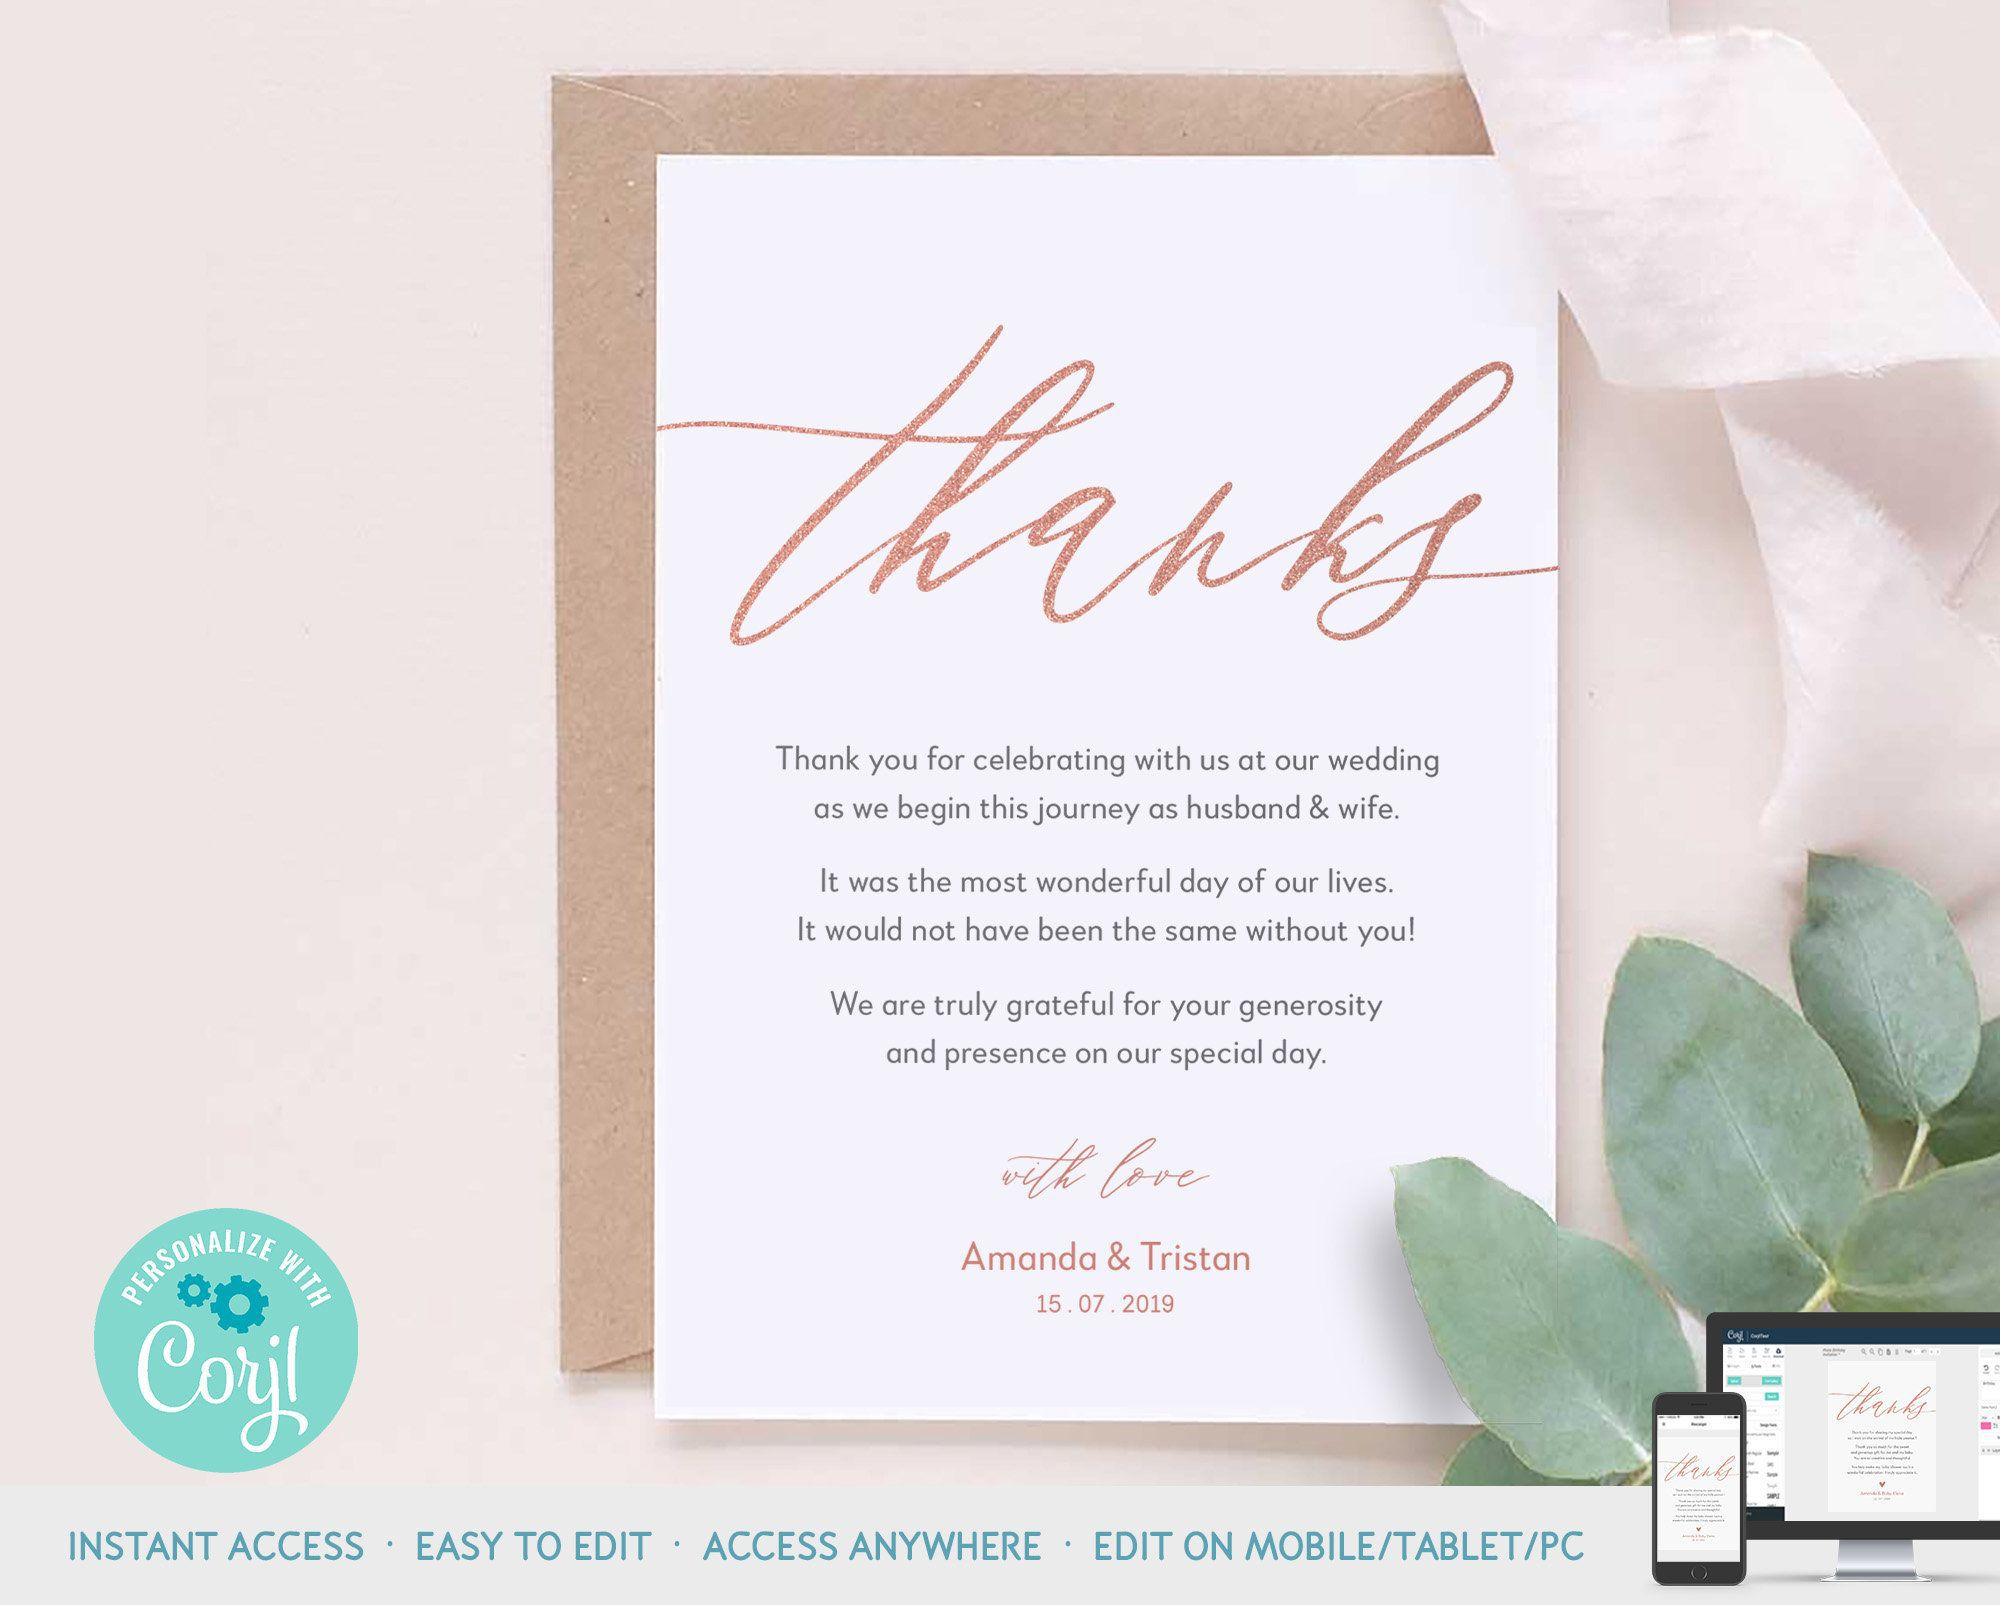 005 Wonderful Thank You Note Template Wedding Shower Concept  Bridal Card Sample WordingFull